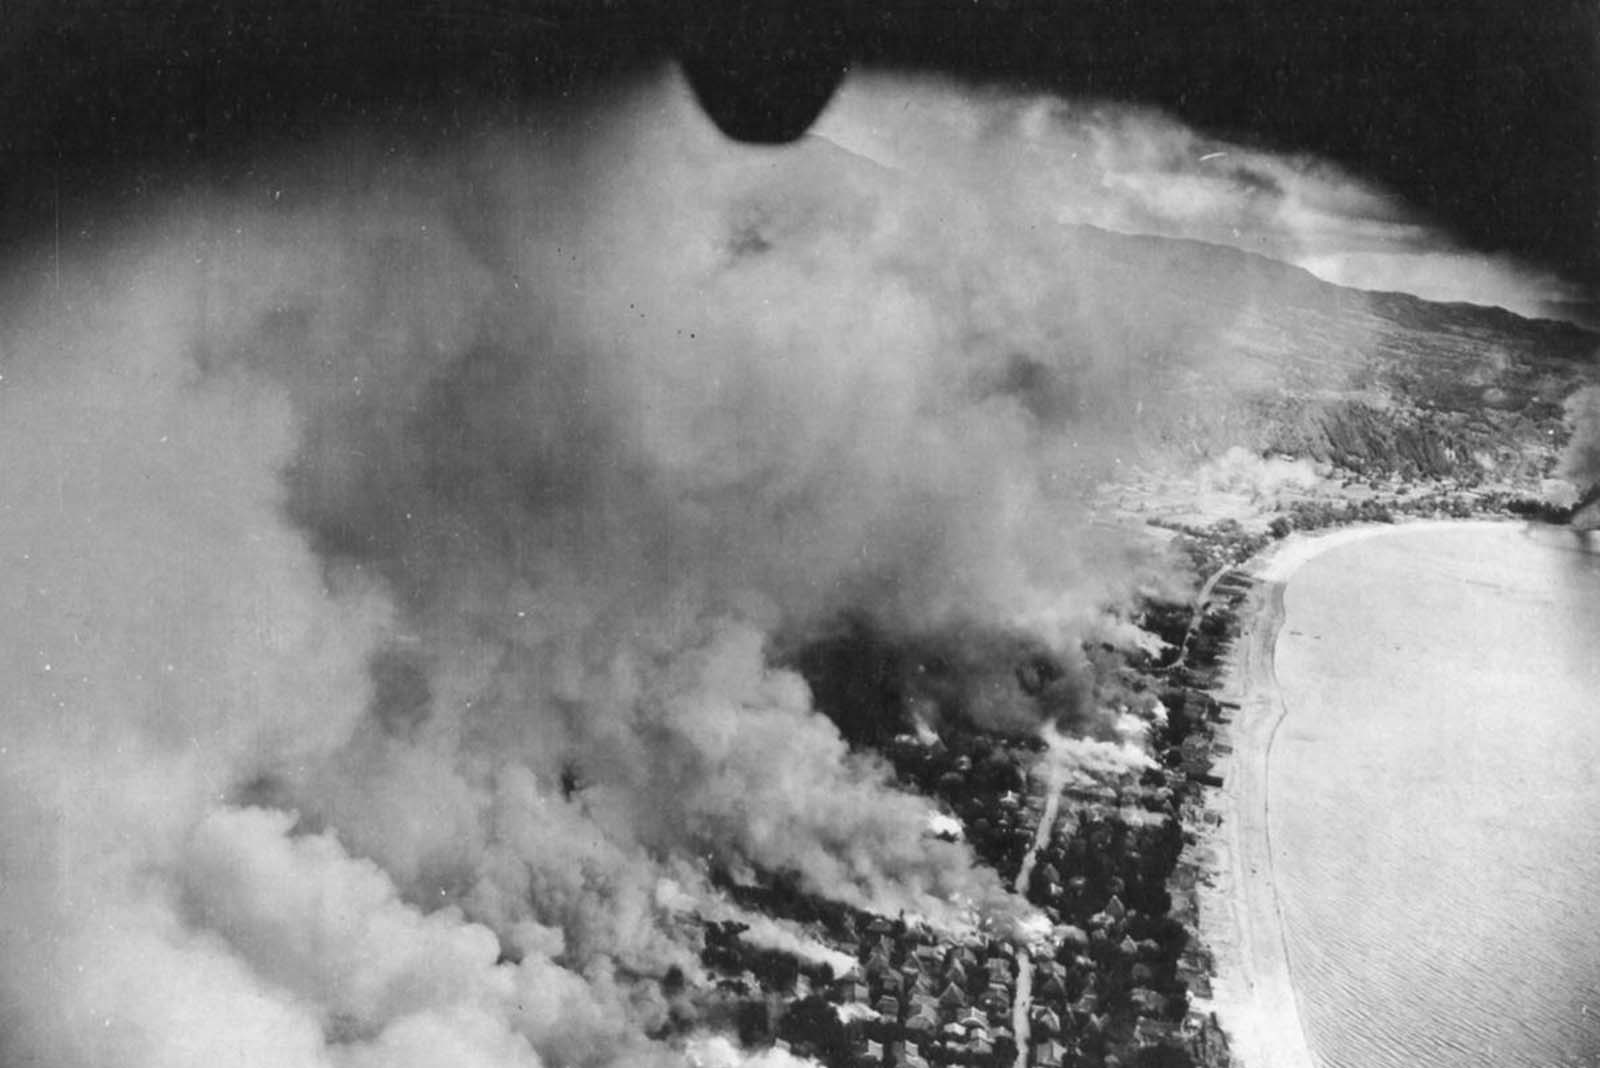 Flames spread through the city of Tarumiza, Kyushu, Japan, after incendiary bombing by the 499th Bomb Squadron, 345th Bomb Group.